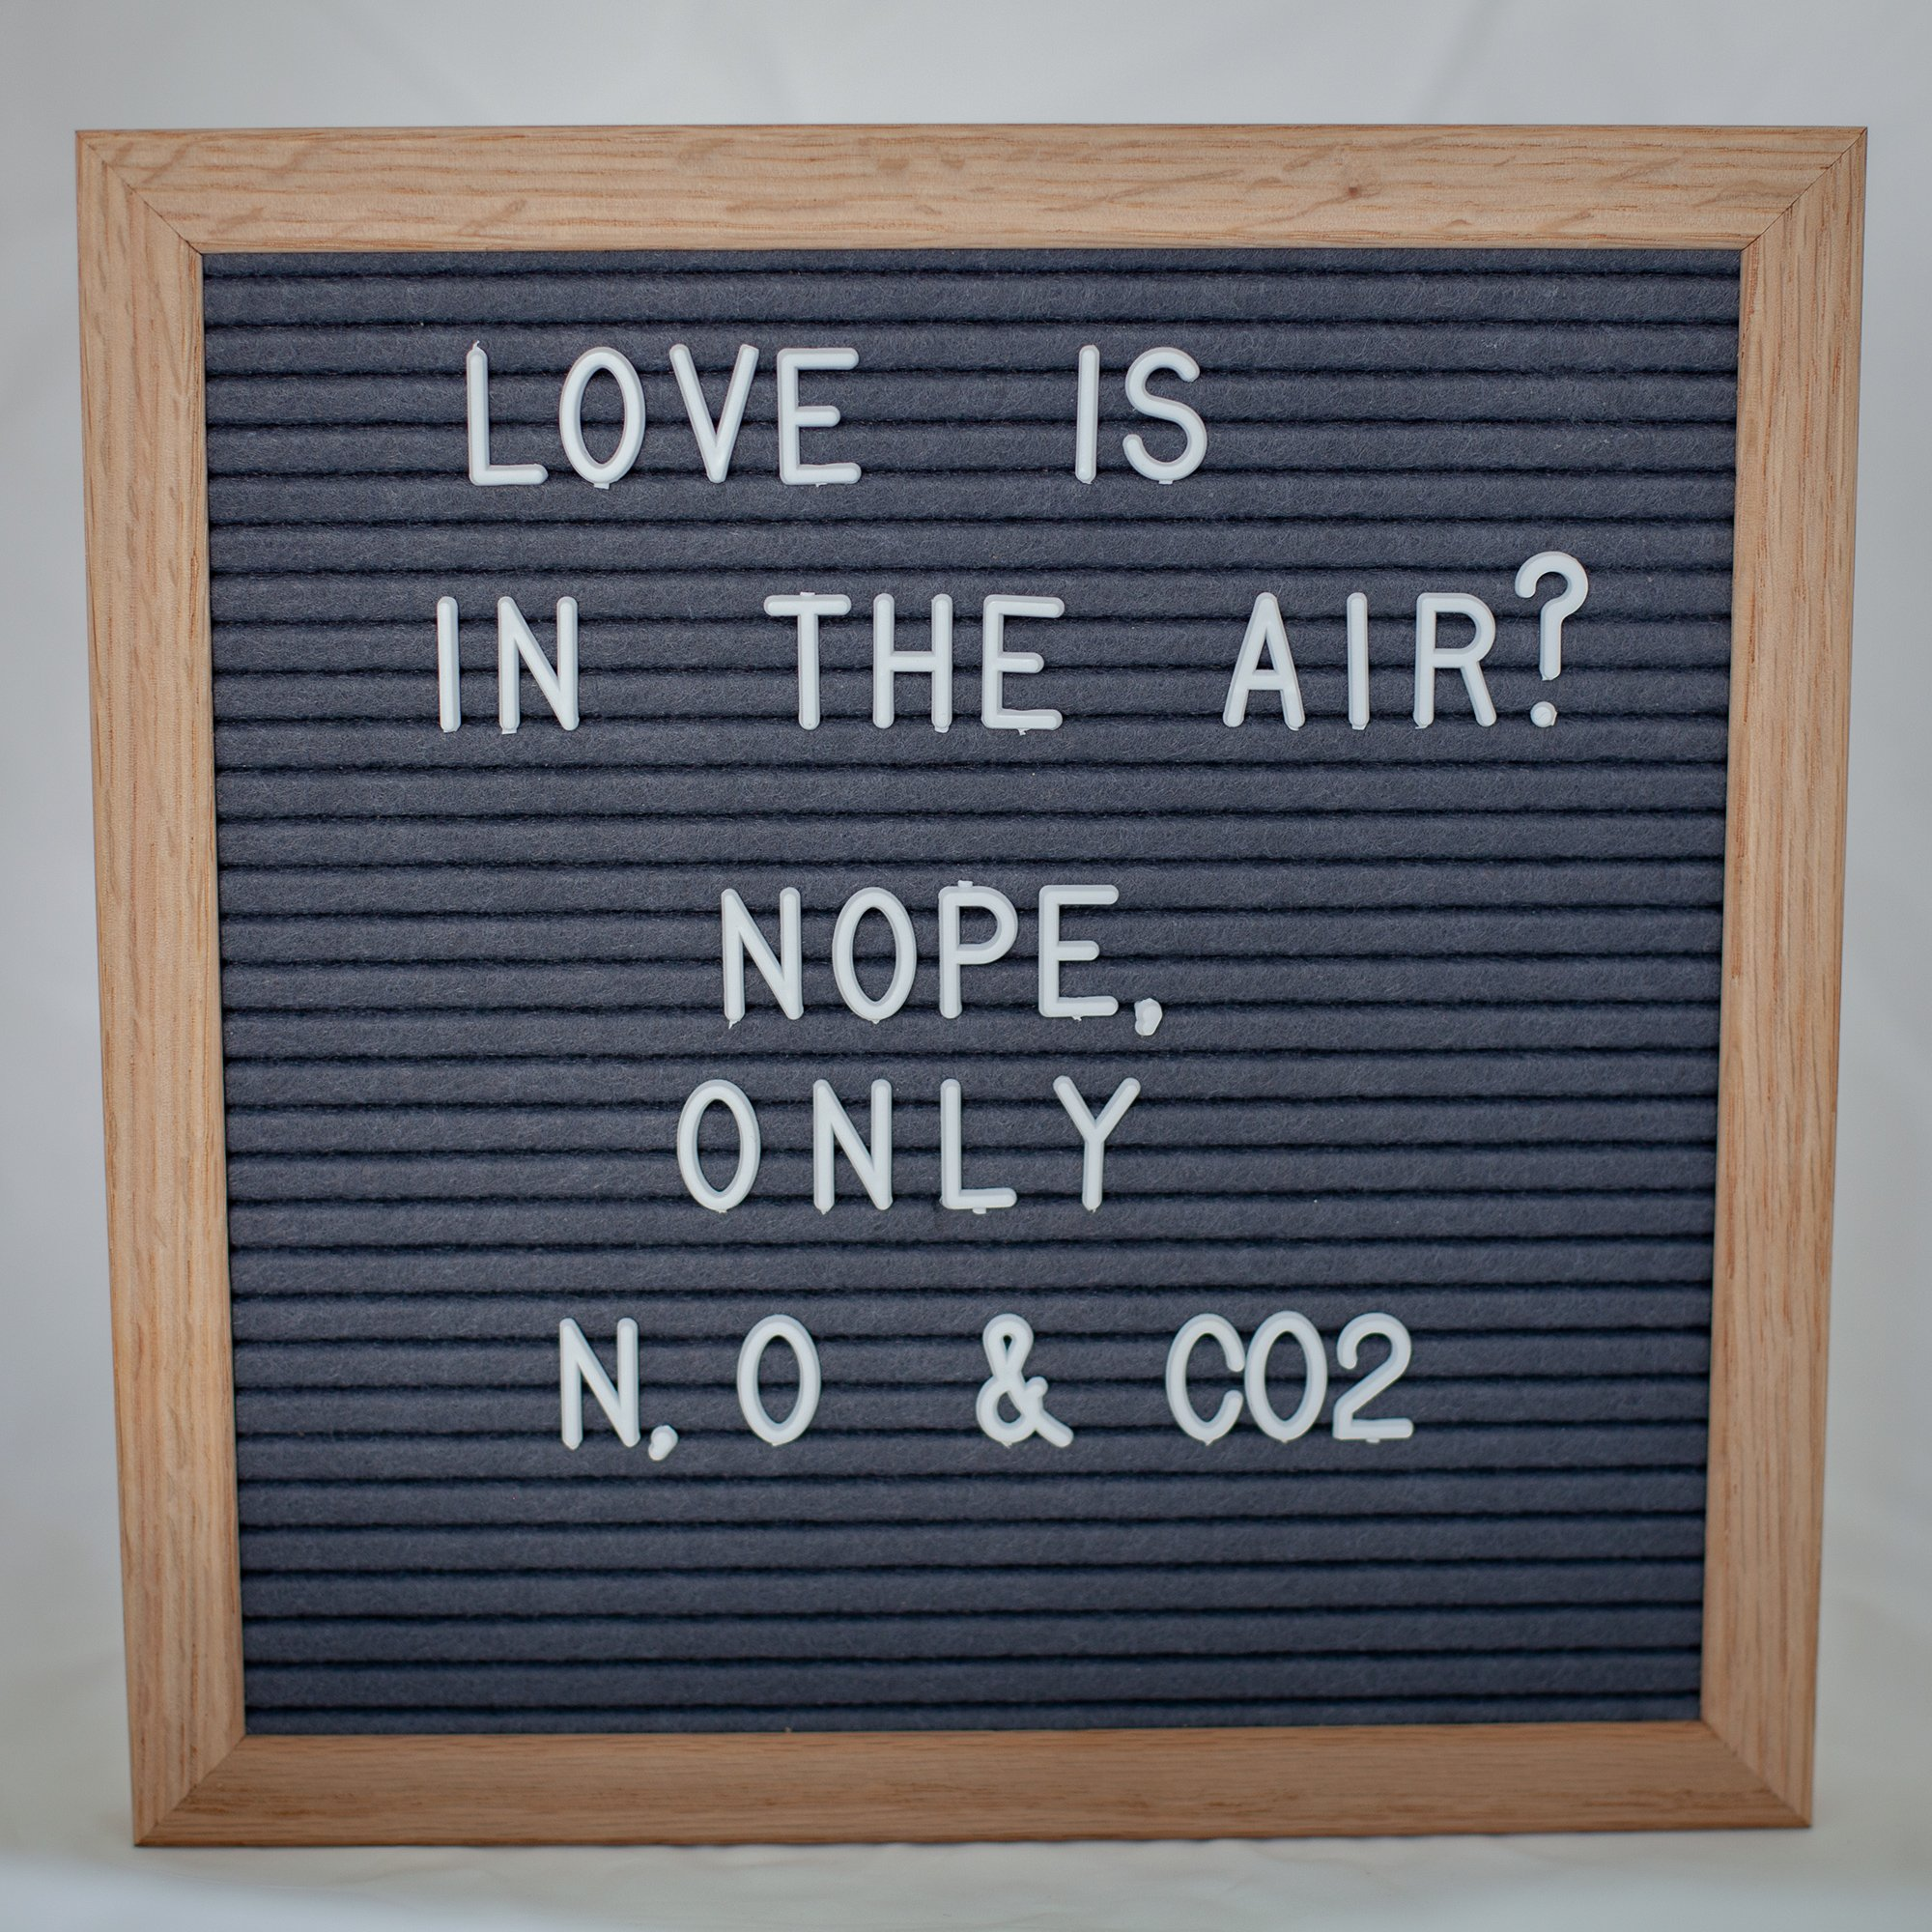 10x10 Inch Gray Felt Letter Board - Plentiful 680 Changeable White Letters to Cover Multiple Usage Scenarios - Durable Oak Frame by DraiviMedia (Image #1)